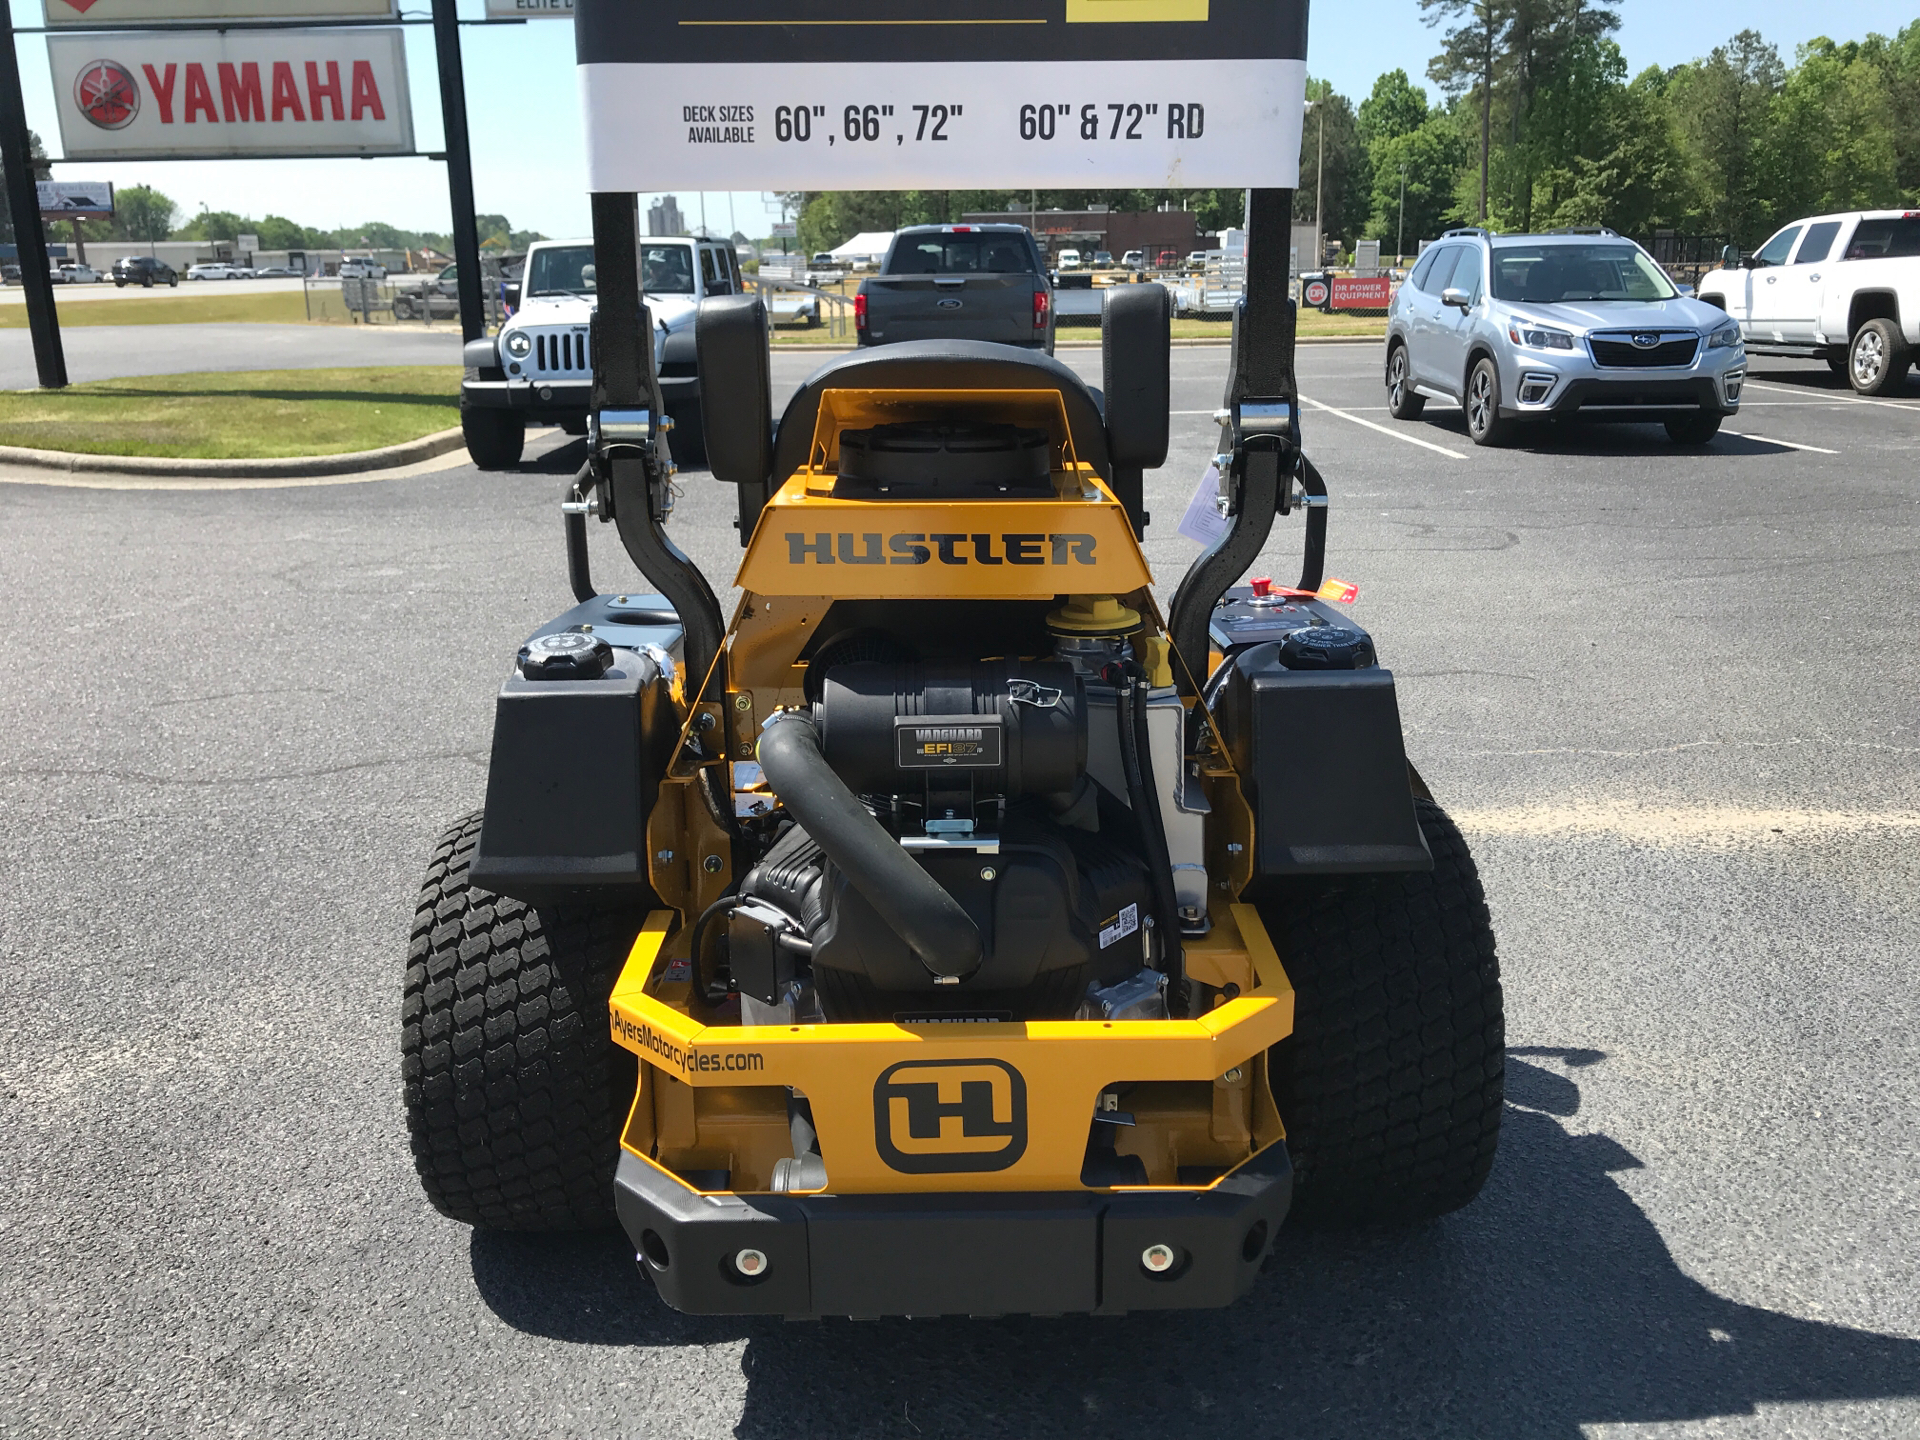 2021 Hustler Turf Equipment Super Z HyperDrive 60 in. Vanguard Big Block EFI 37 hp with Oil Guard in Greenville, North Carolina - Photo 3